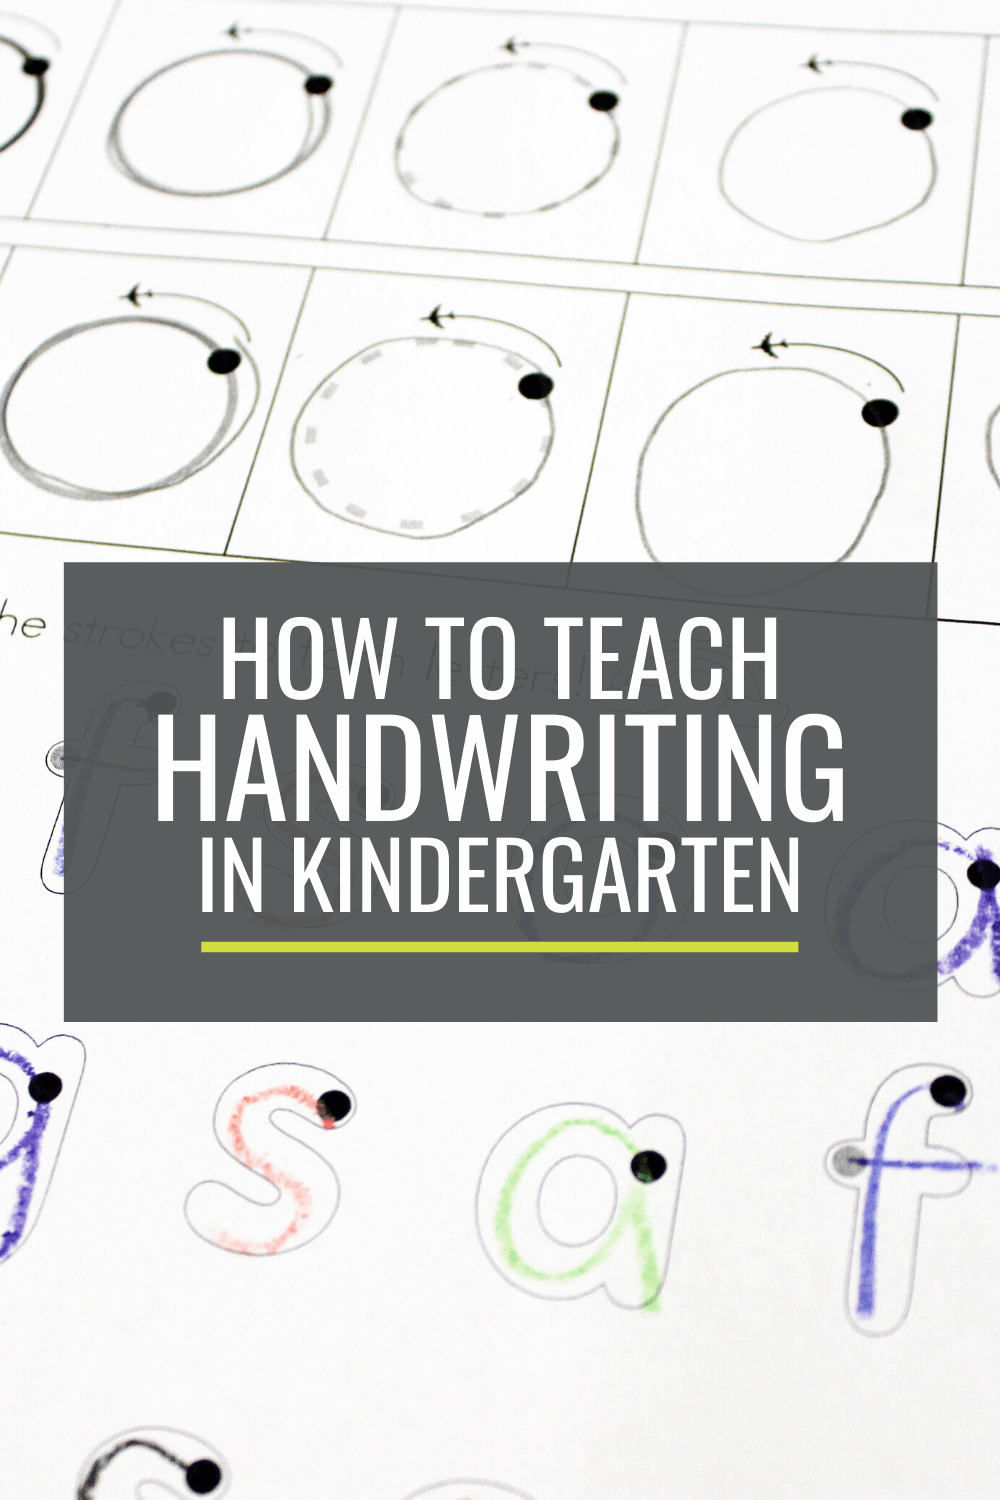 Breaking It Down - How to Teach Handwriting in Kindergarten